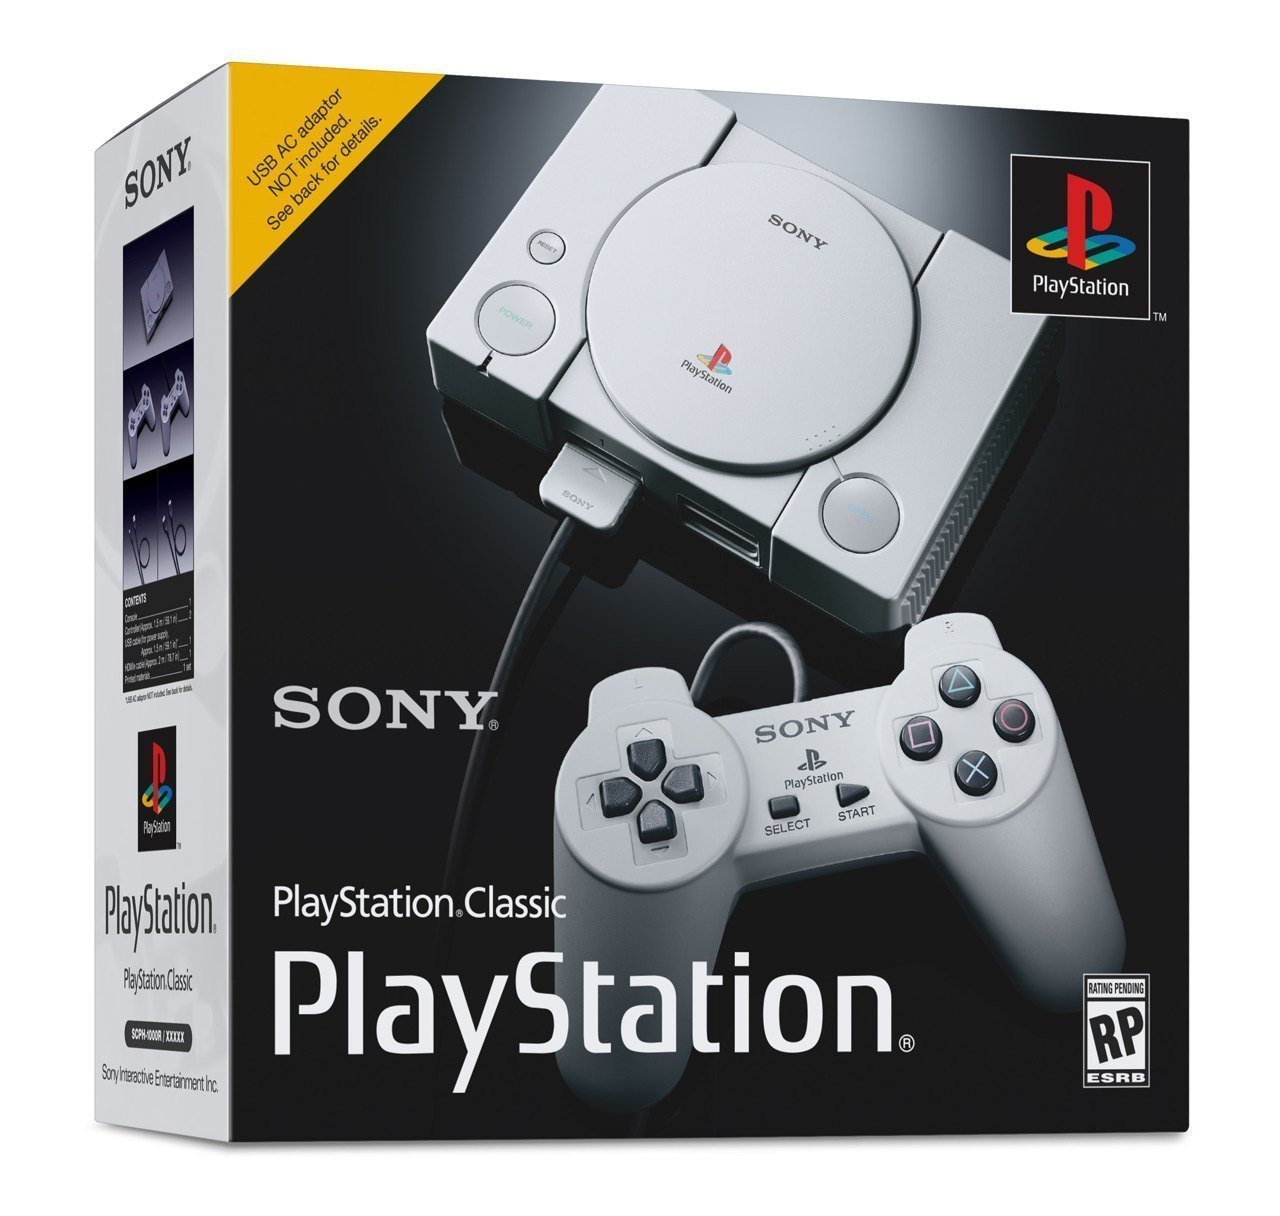 Sony Just Announced The £90 PlayStation Classic Console